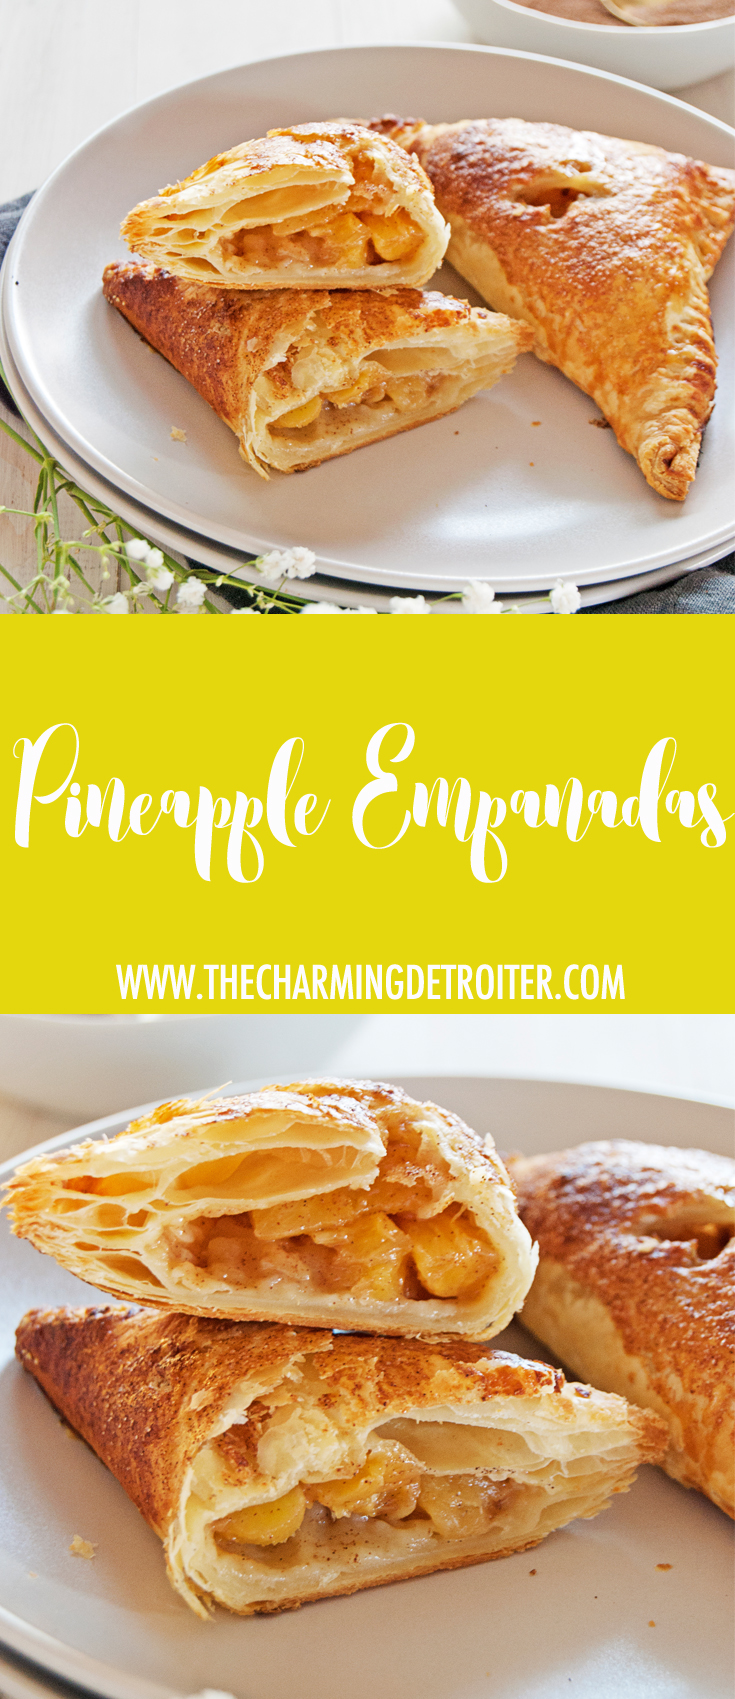 This will be your new favorite of the pineapple empanada recipes! This beautiful pineapple filling features tasty cinnamon, cardamom, and honey and is wrapped in a flaky golden shell!